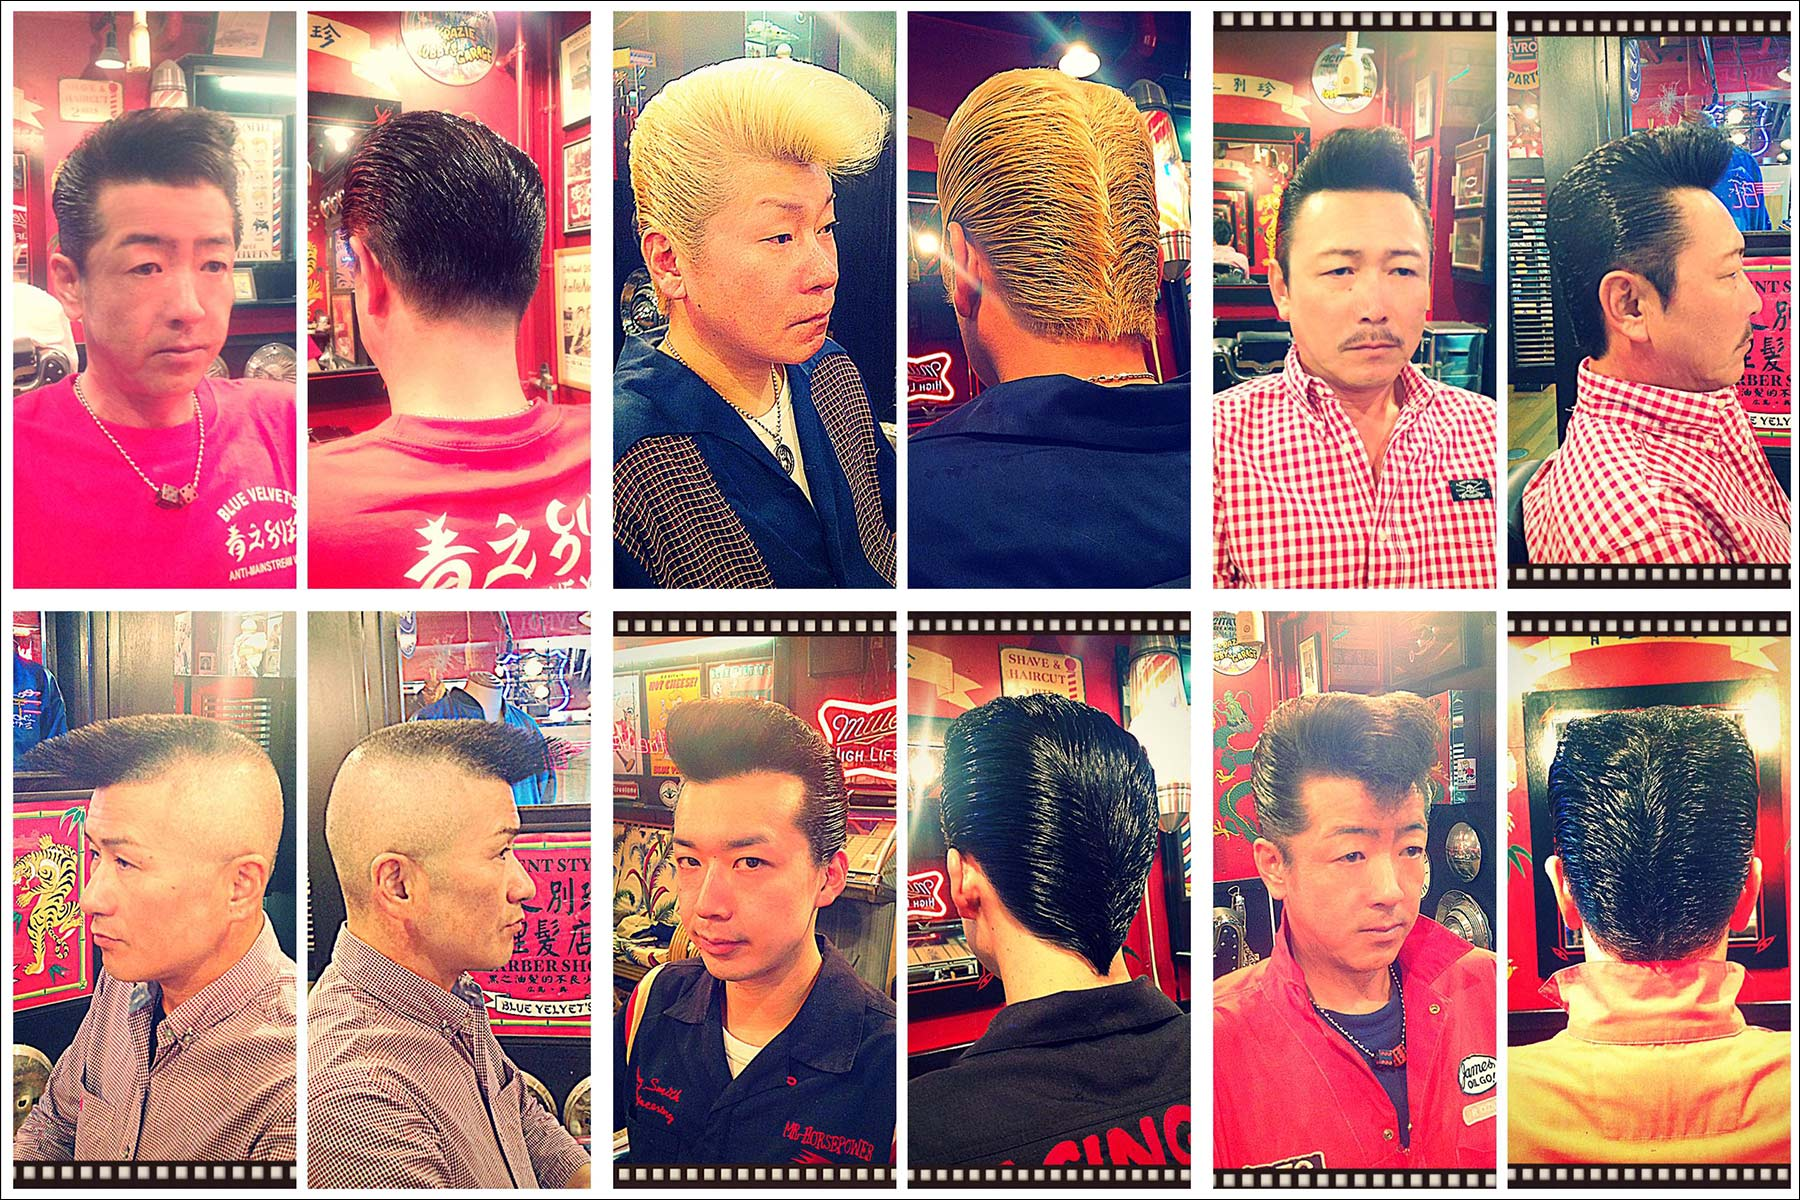 Portraits of Japanese customers in 50s style pompadours from Blue Velvet's barber shop. Ponyboy magazine New York.